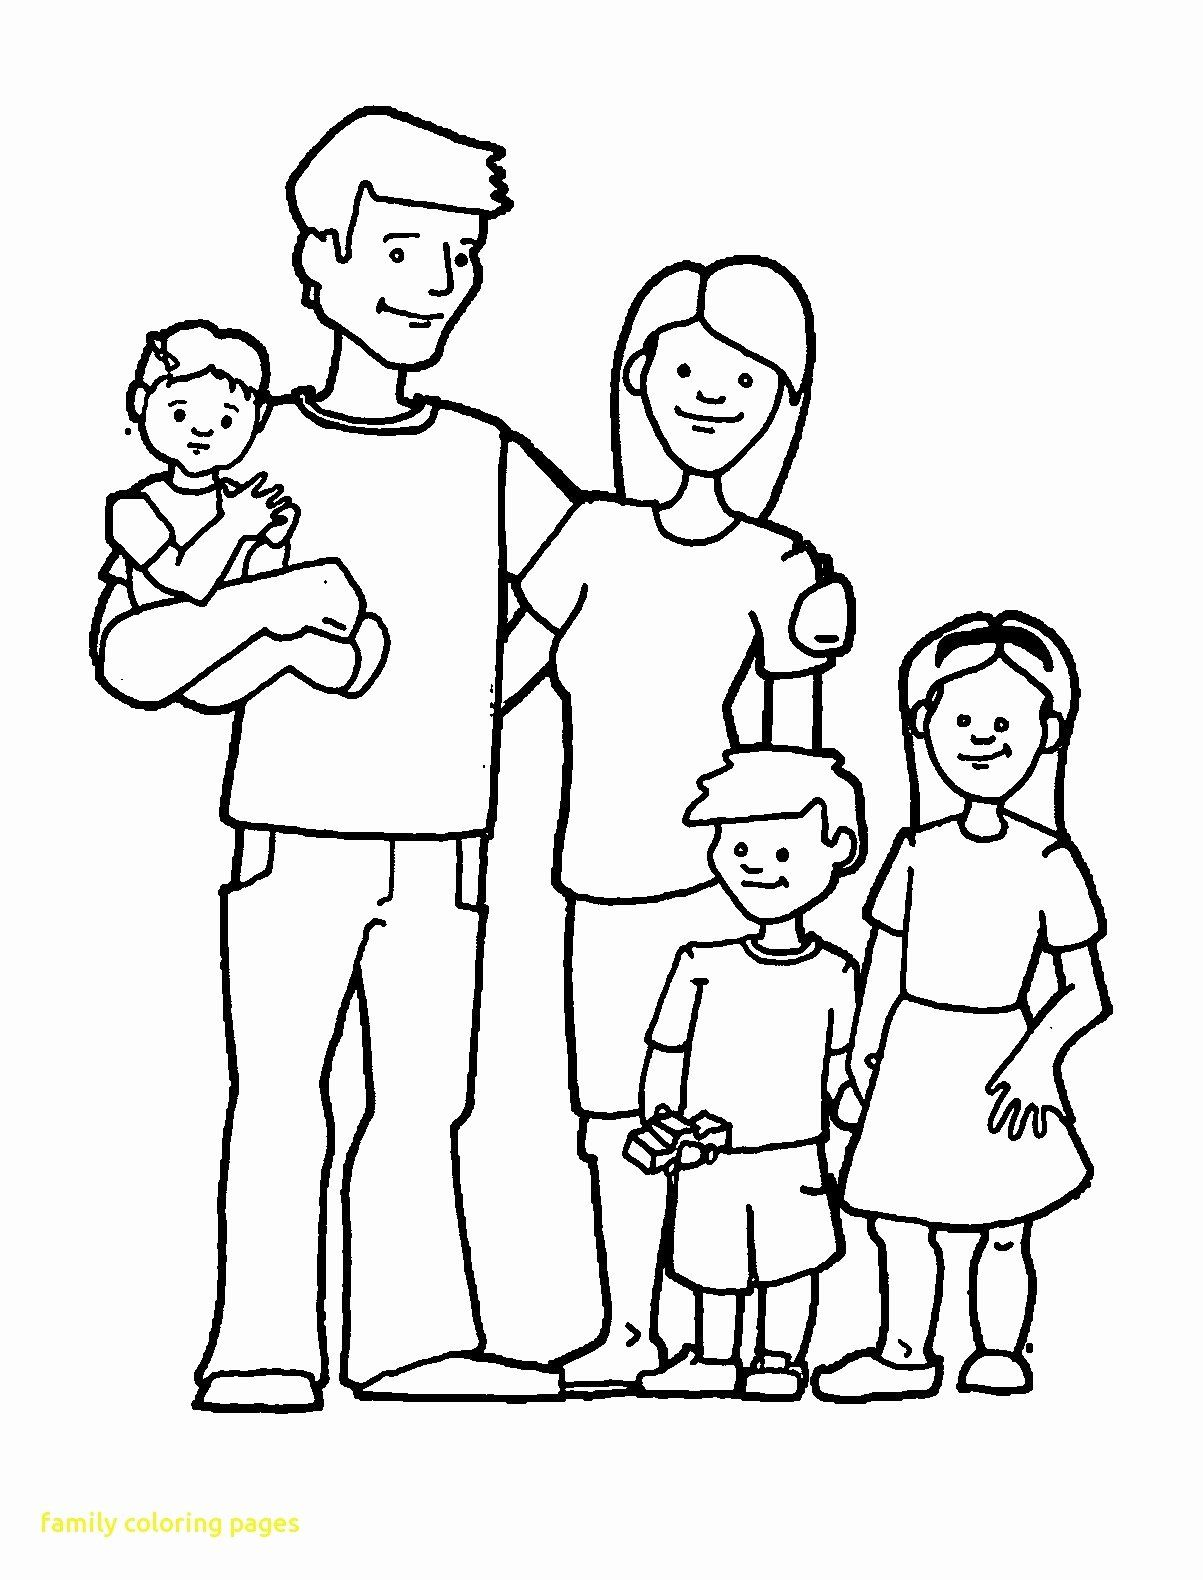 Black Family Coloring Pages Beautiful Family Coloring Pages